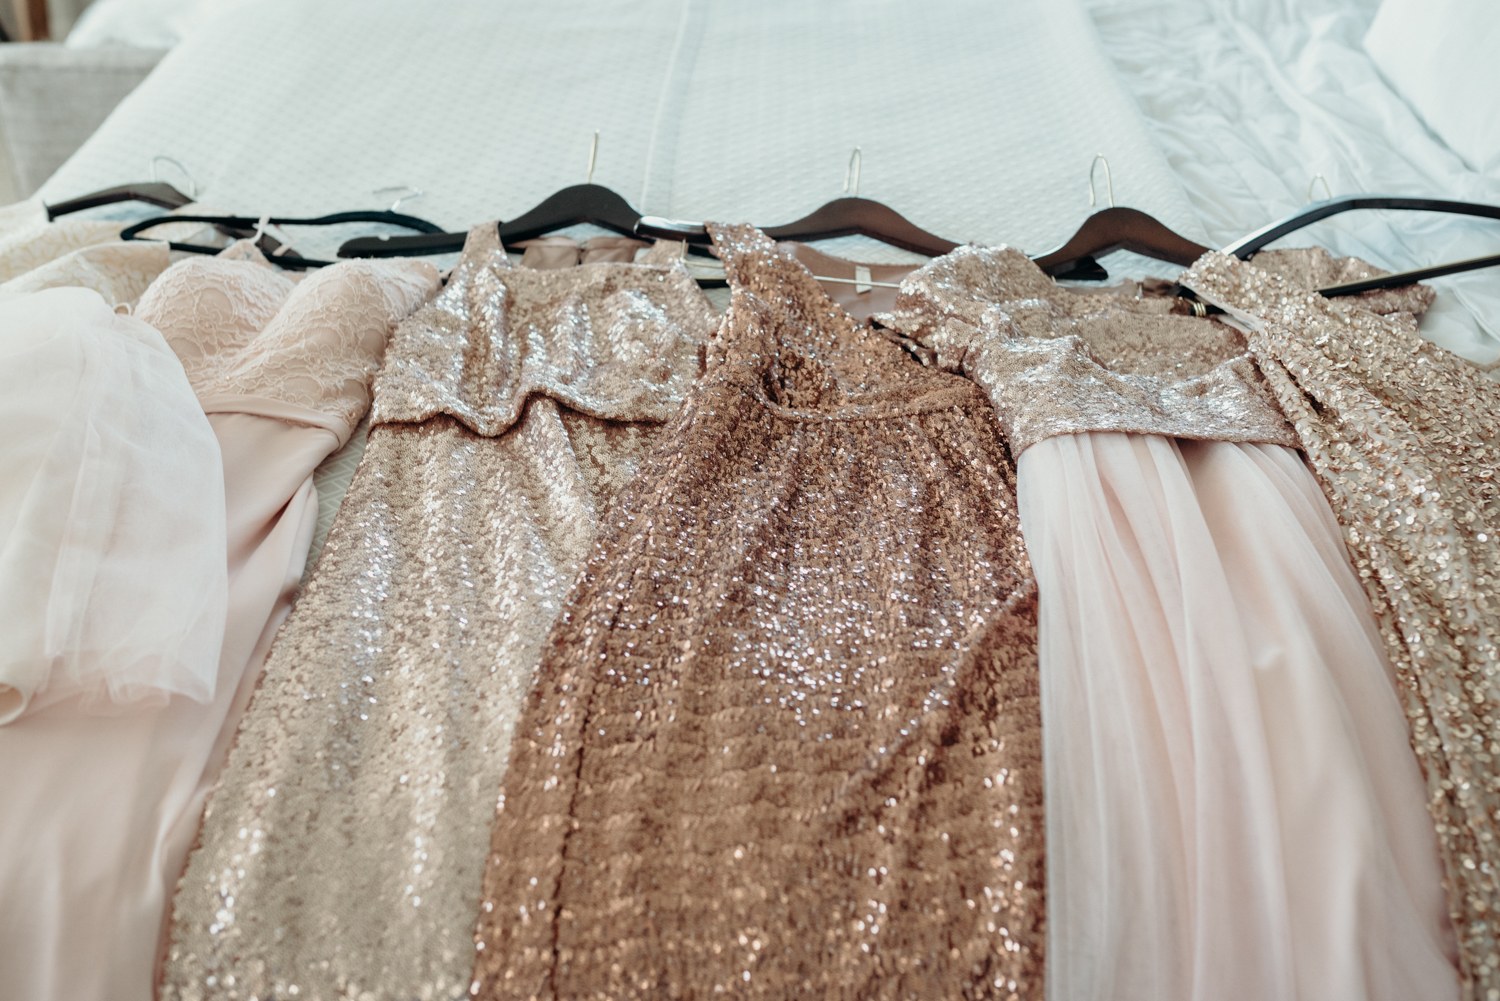 A slew of sparkly bridesmaids dresses wait on the bed before a wedding at Lansdowne Resort.